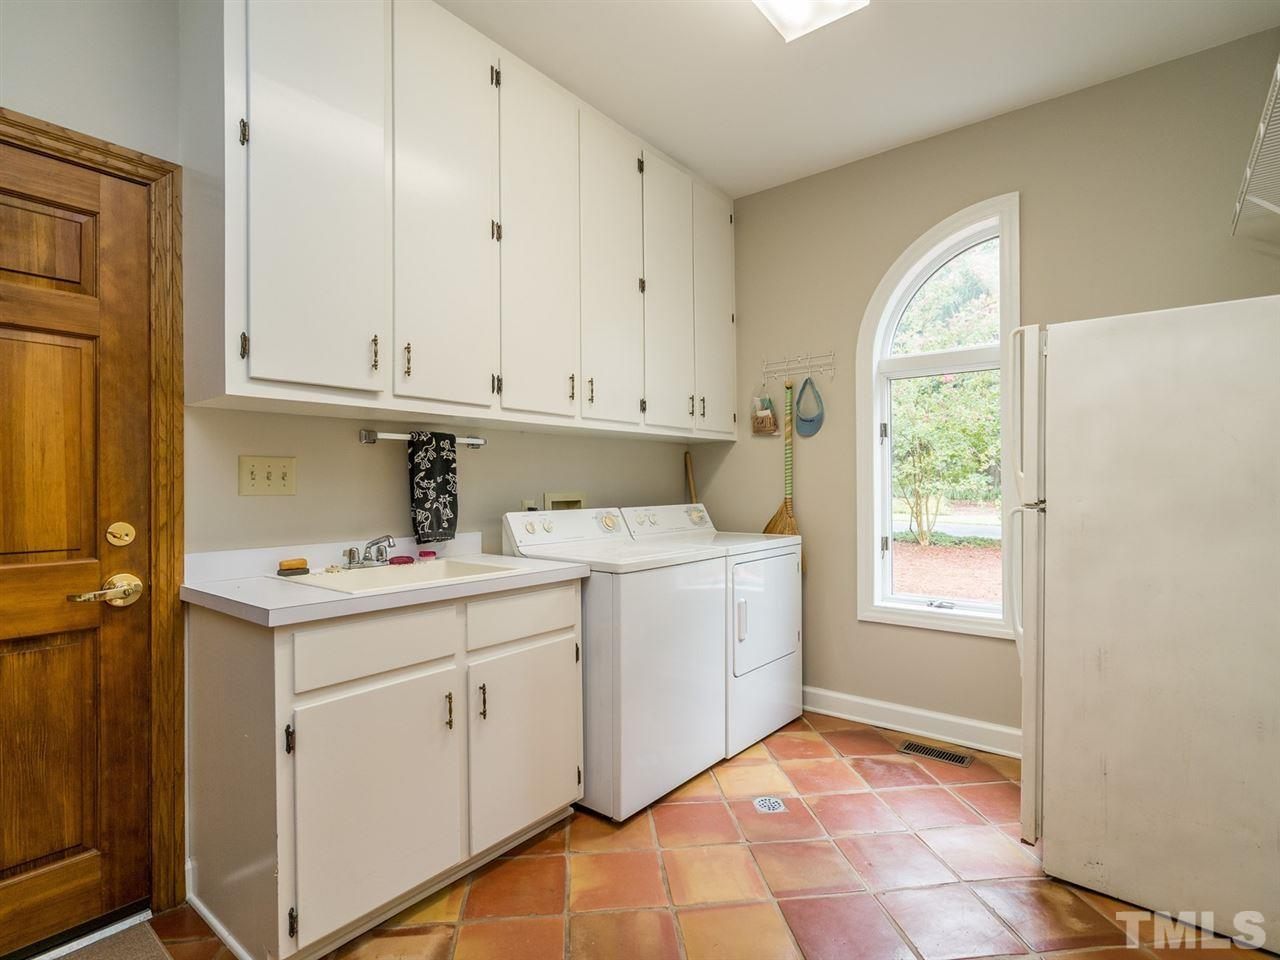 The laundry room is quite impressive and has a sink, built-in cabinetry and lots of storage options.